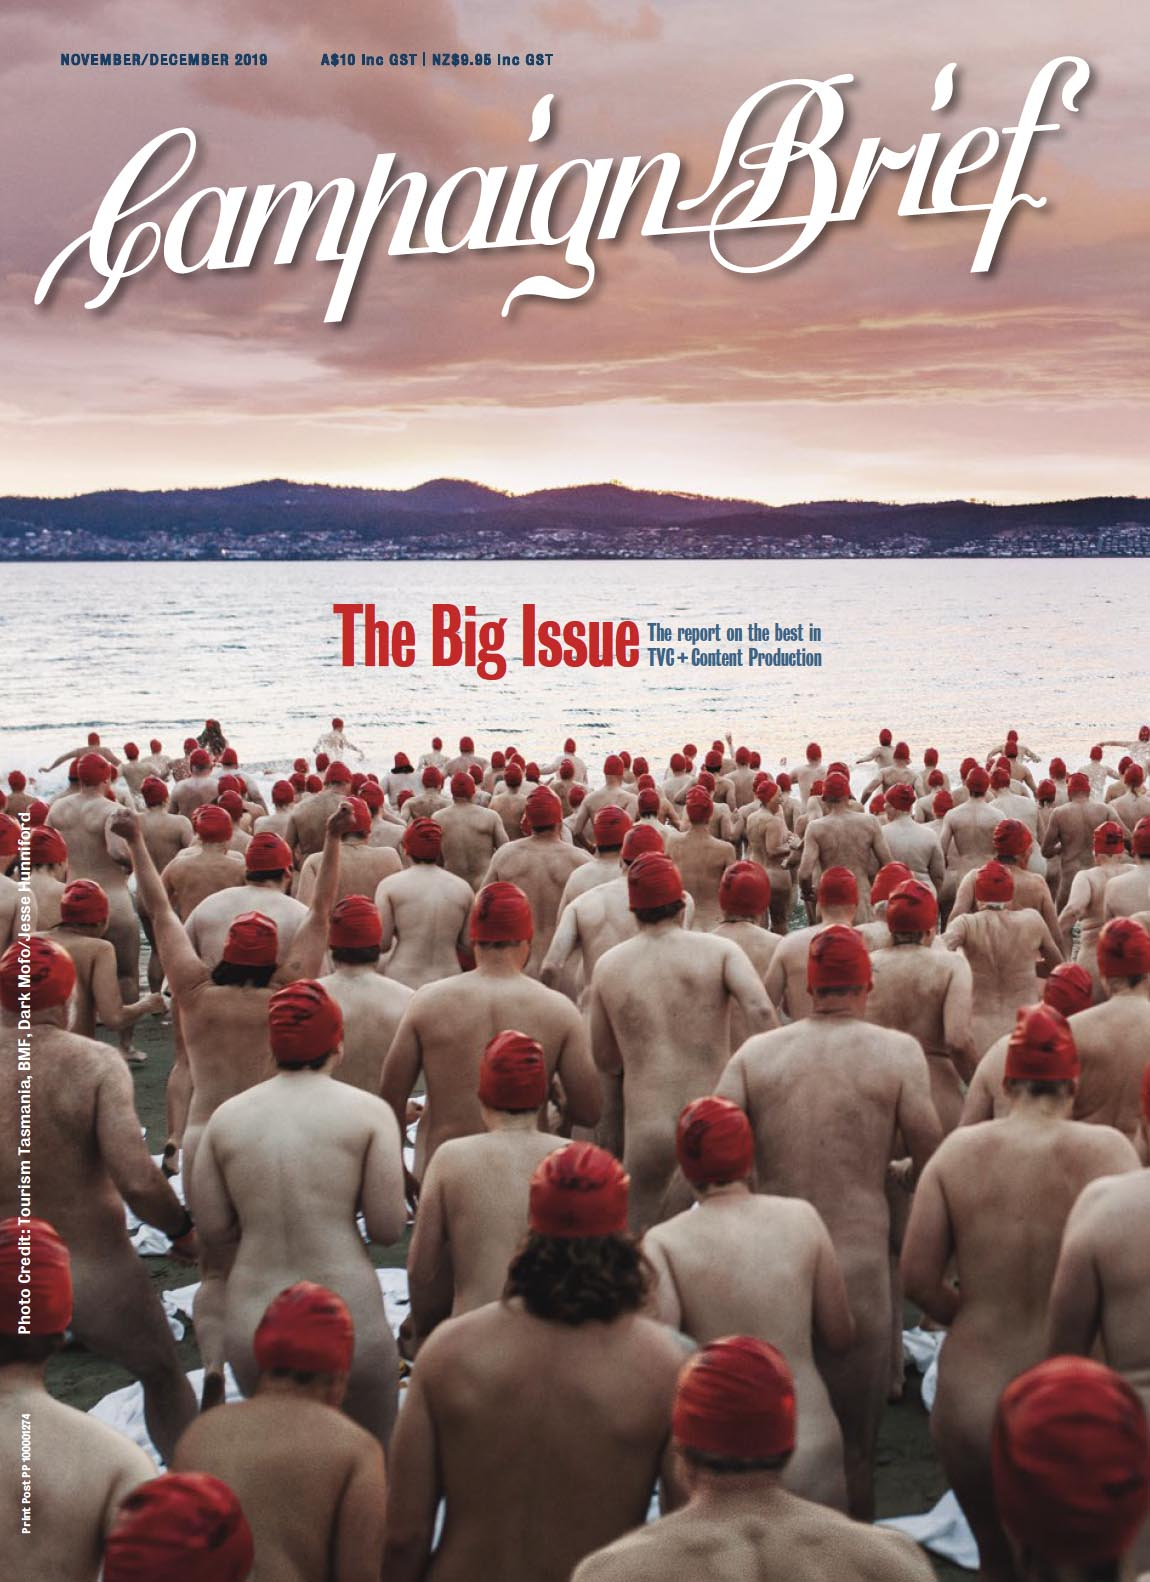 Don't miss the Big Issue of Campaign Brief featuring OZ/NZ TVC Production + Content Report – OUT NOW